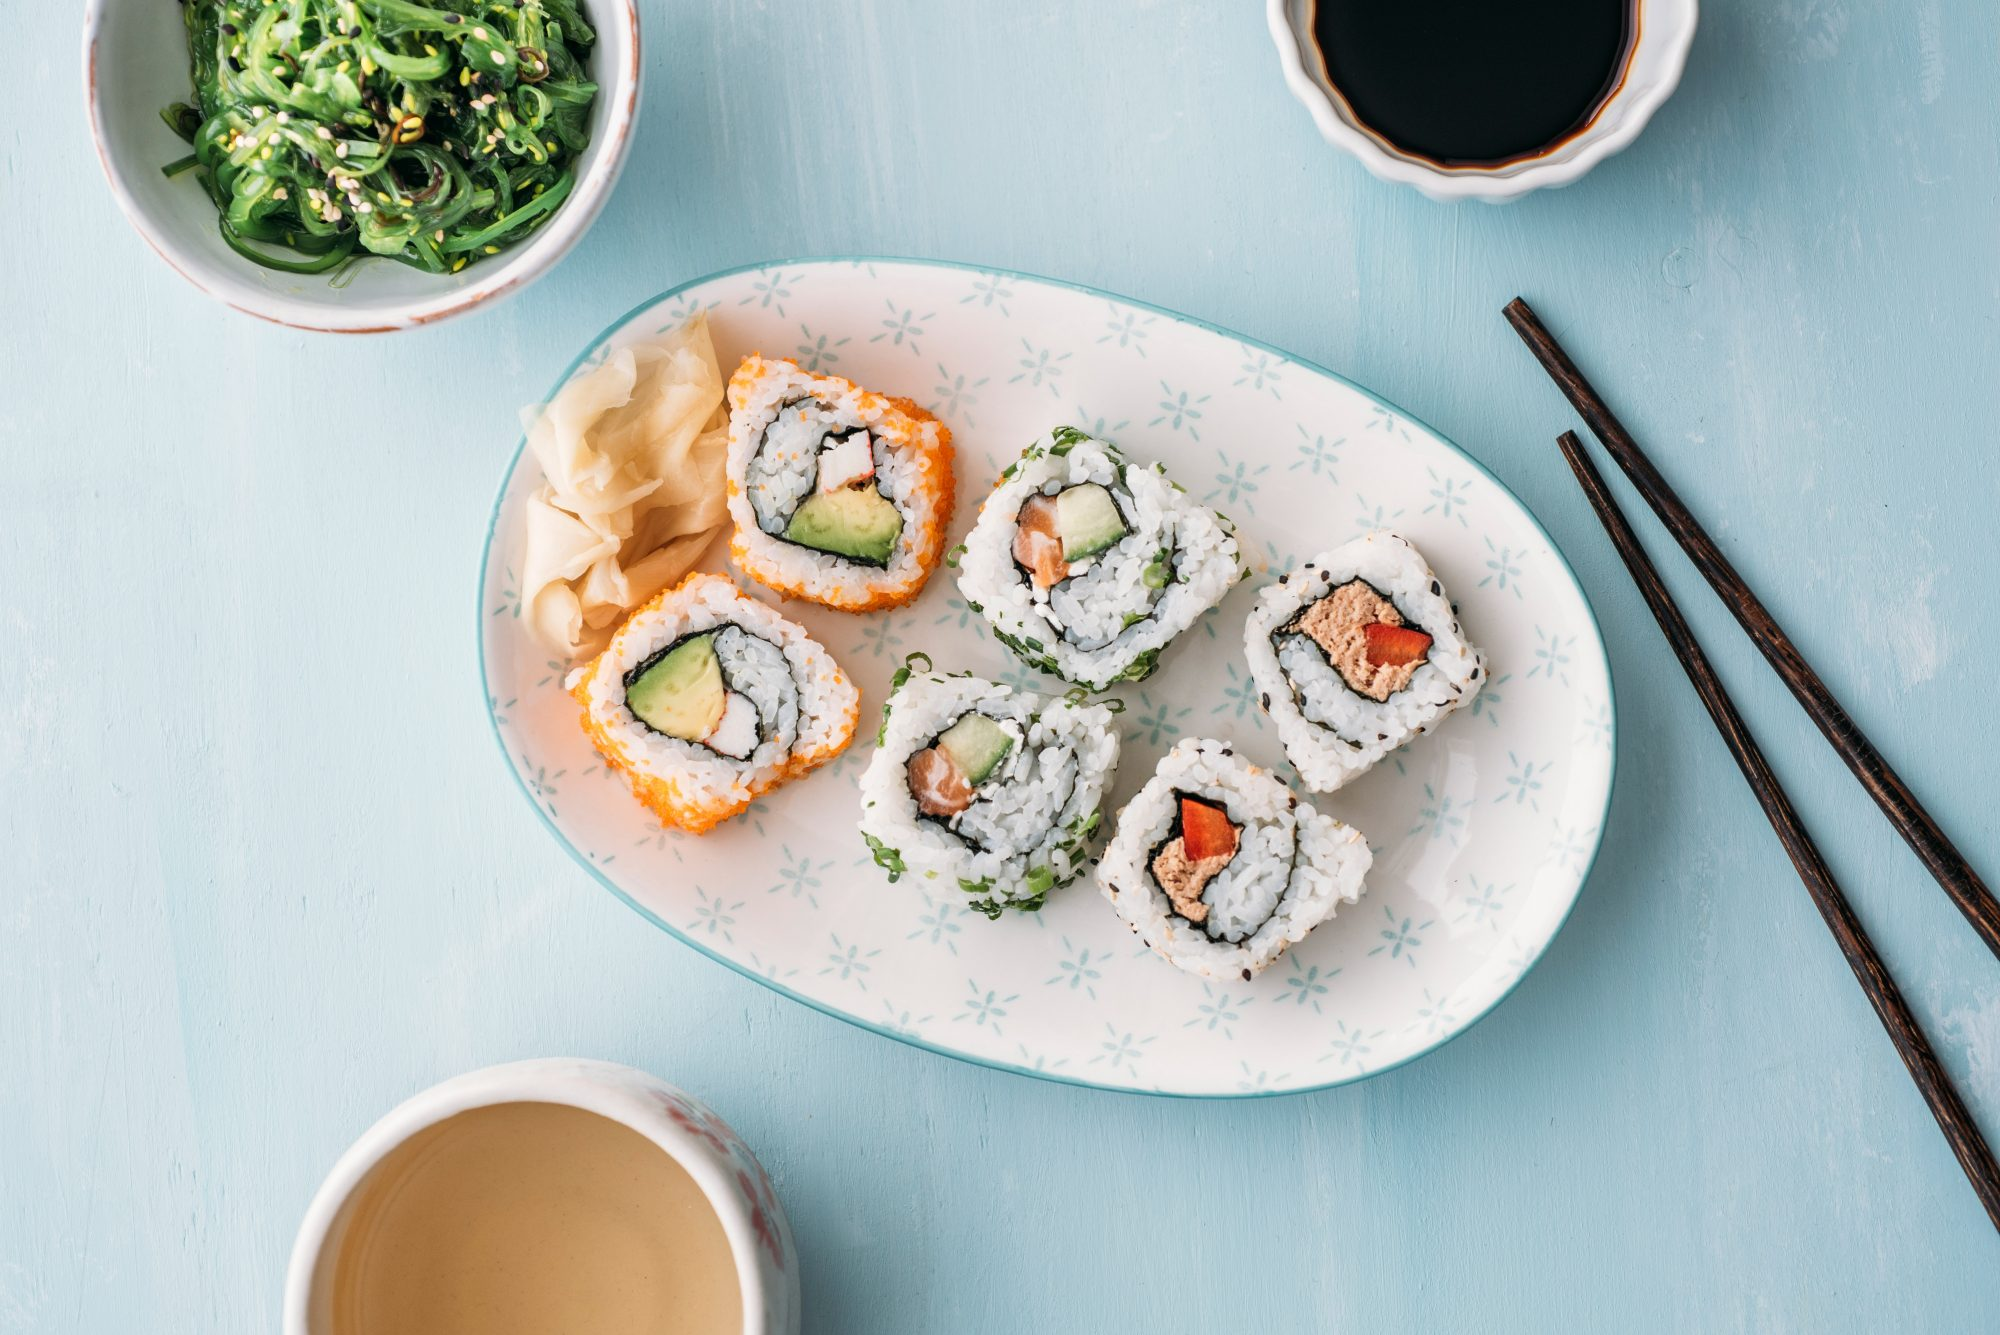 Sushi rolls on plate with green tea